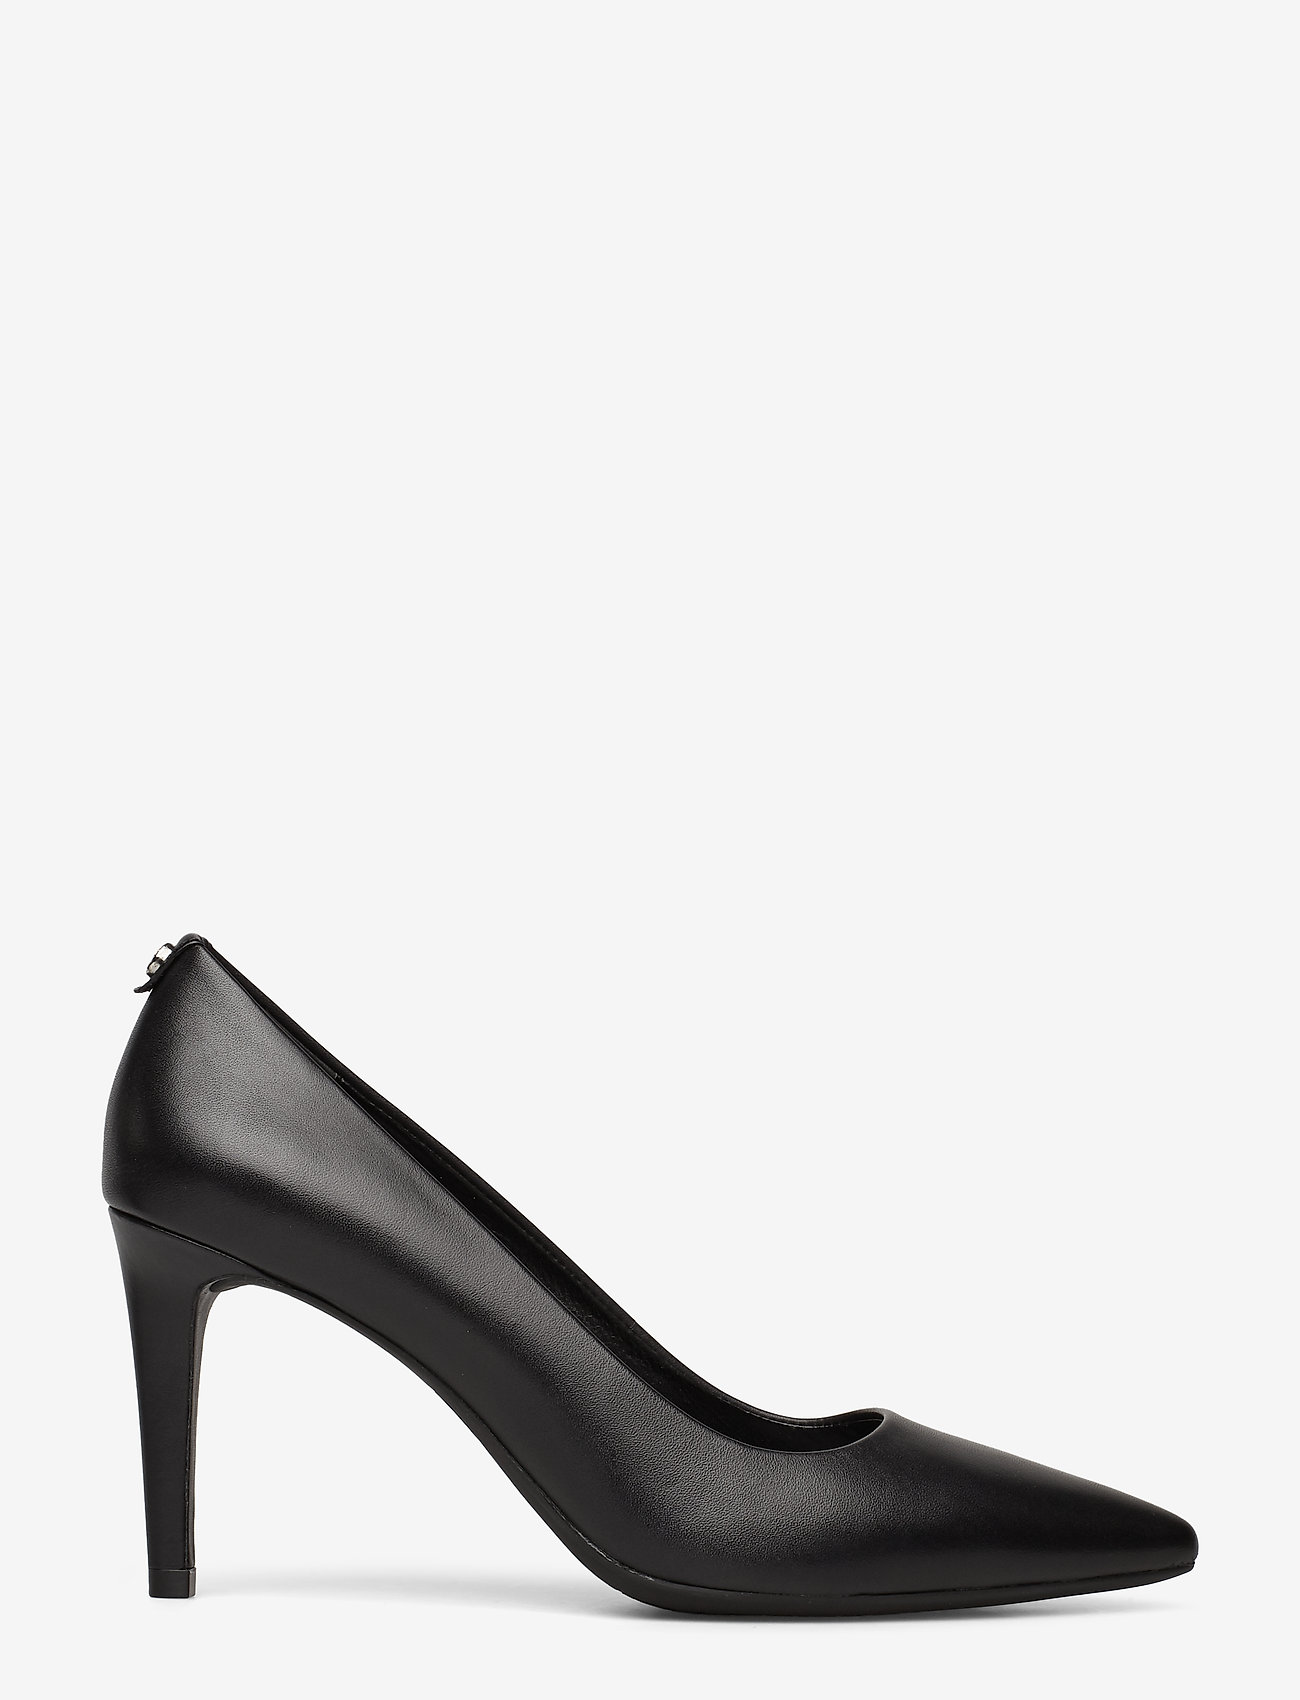 Michael Kors Shoes Dorothy Flex Pump - Chaussures À Talons